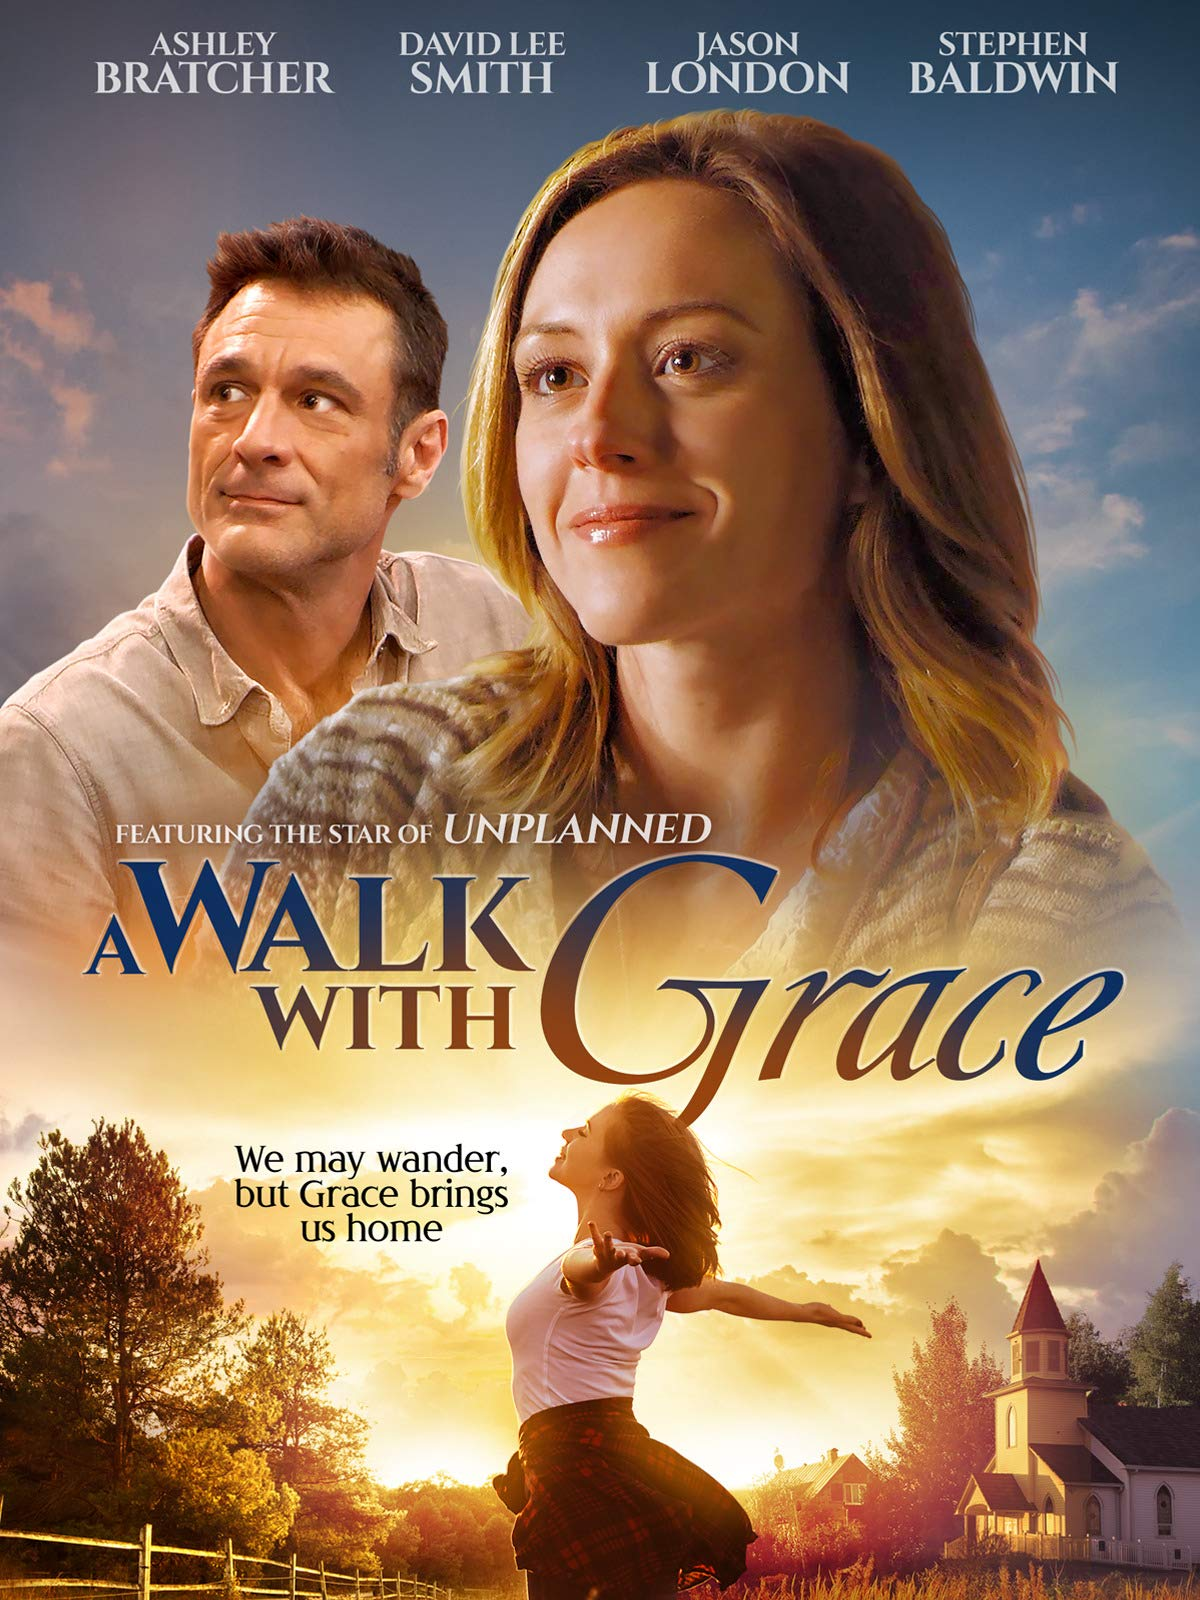 Amazon.com: A Walk with Grace: Ashley Bratcher, David Lee Smith ...